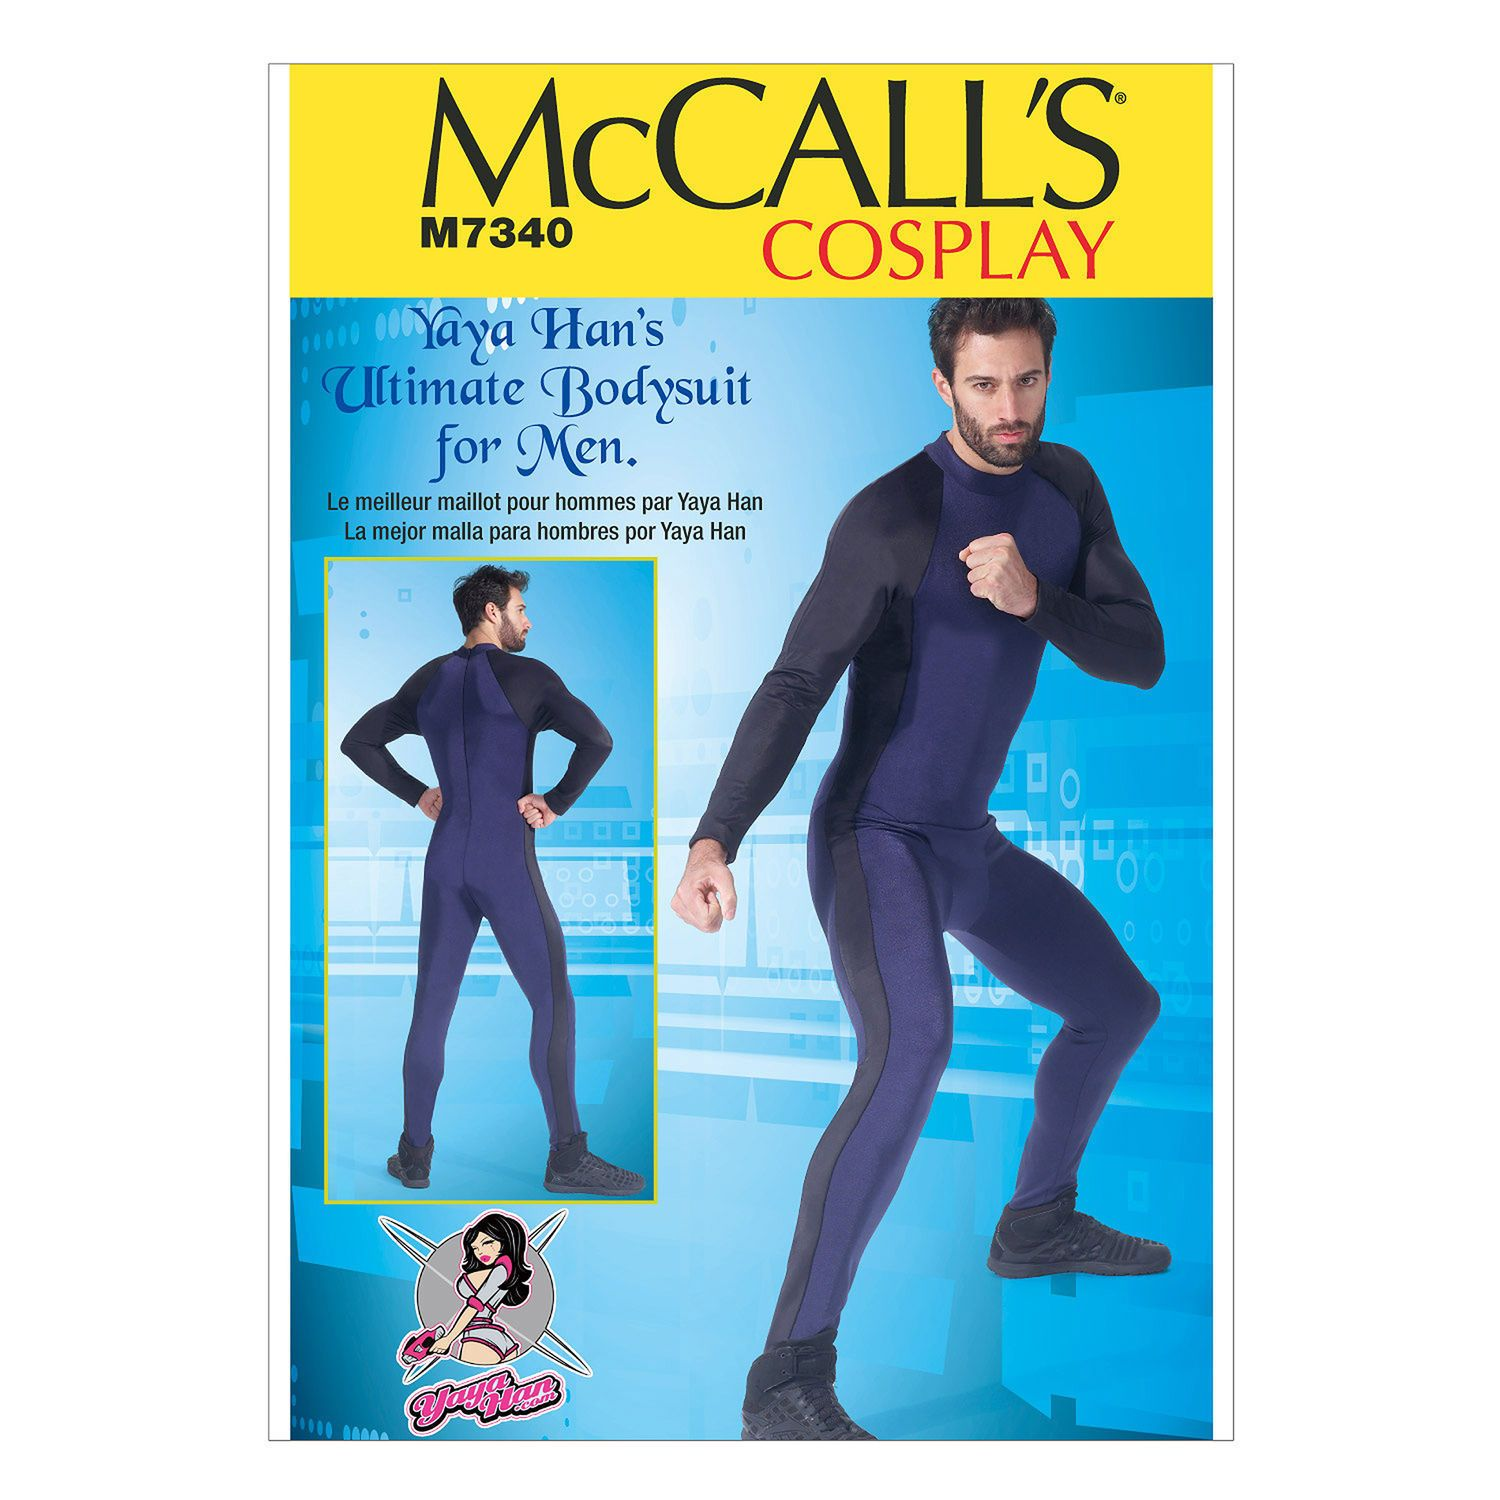 McCalls 7340 Men\'s Bodysuit Costume Yaya Han Cosplay Sewing Pattern ...